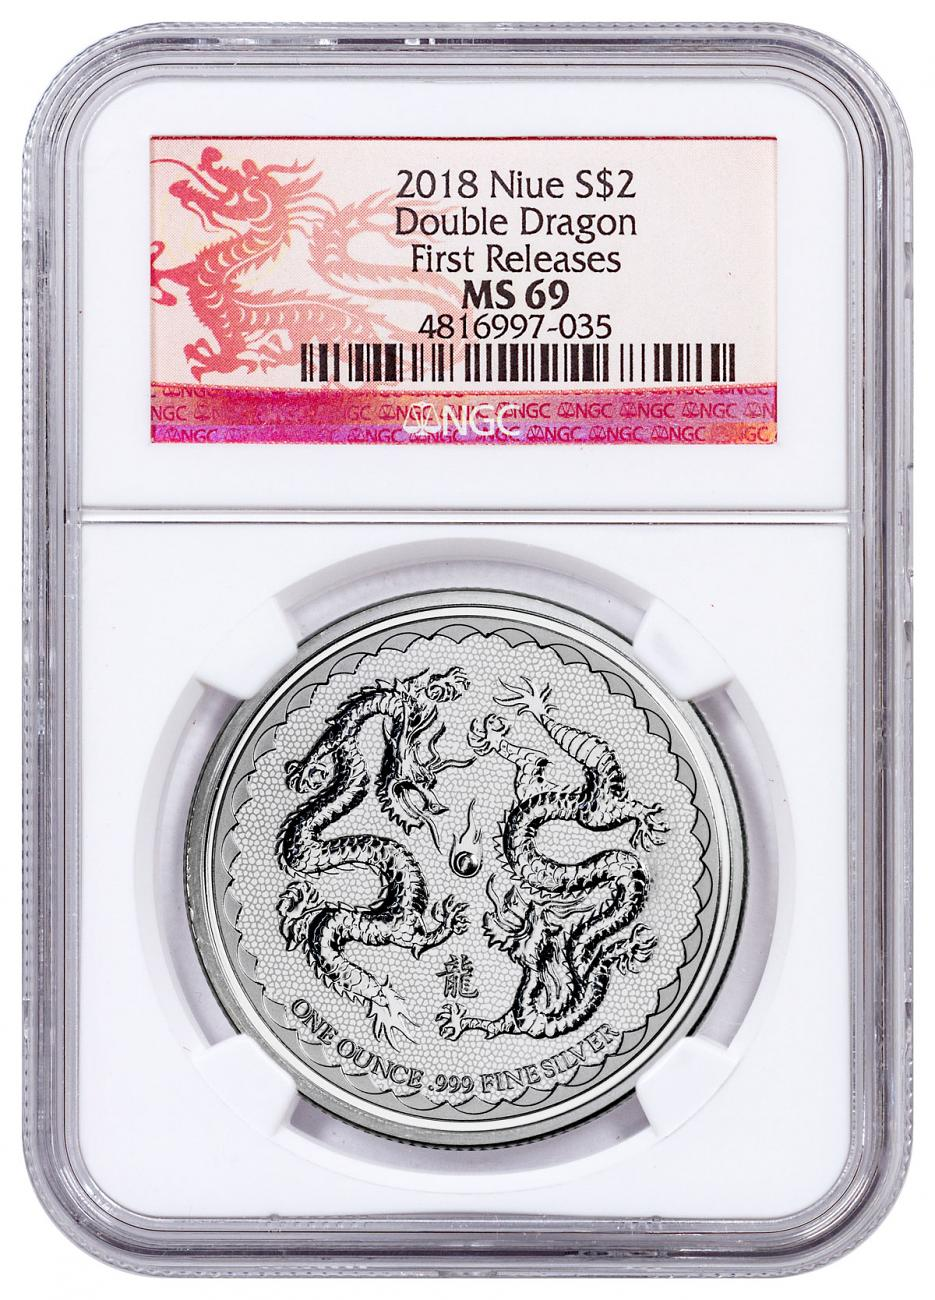 2018 Niue 1 oz Silver Double Dragon - Pearl of Wisdom $2 Coin NGC MS69 FR Dragon Label